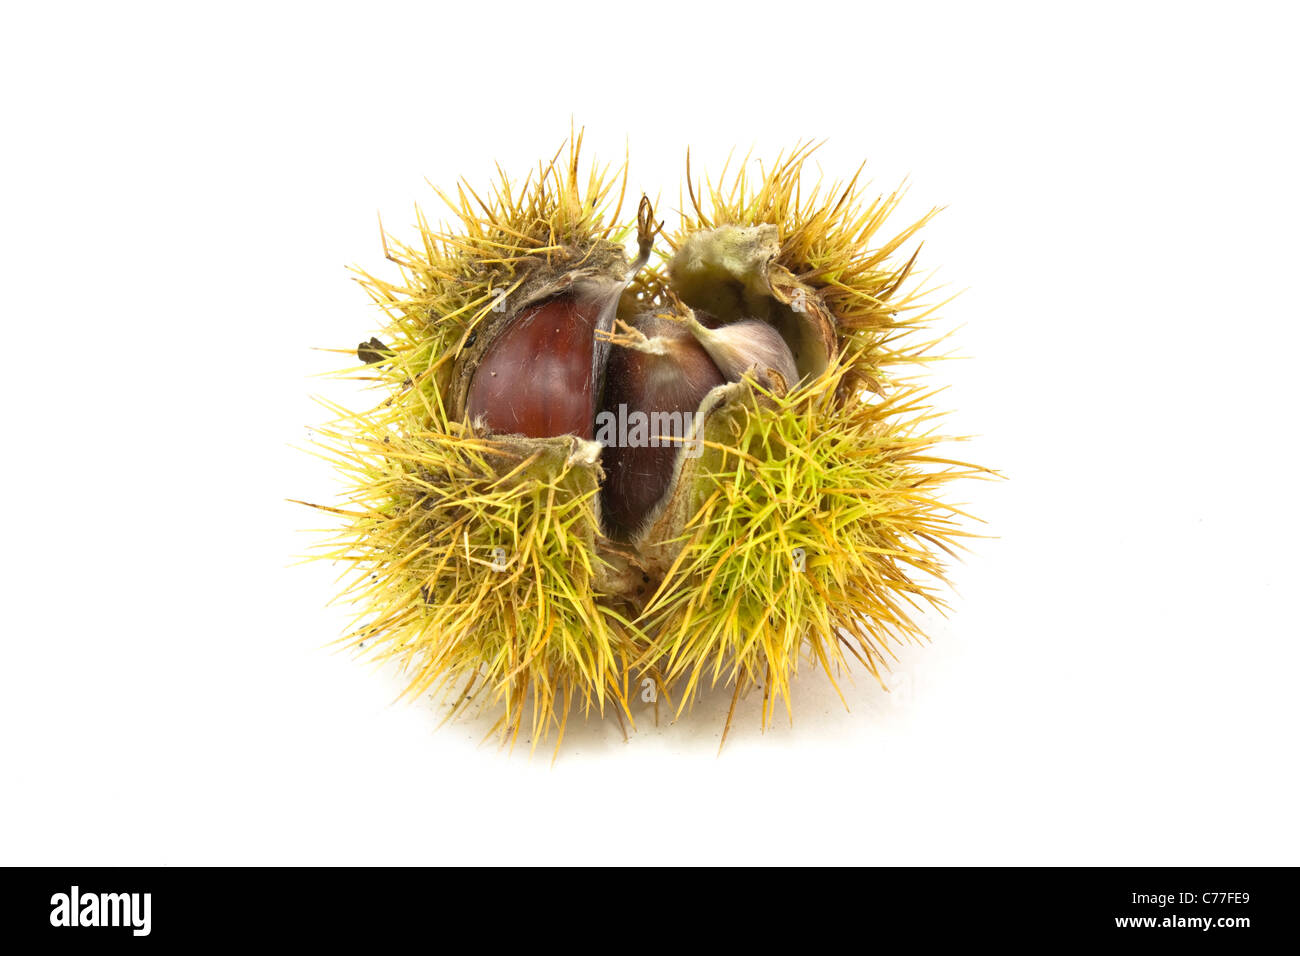 close up shot of a chestnut in its case - Stock Image